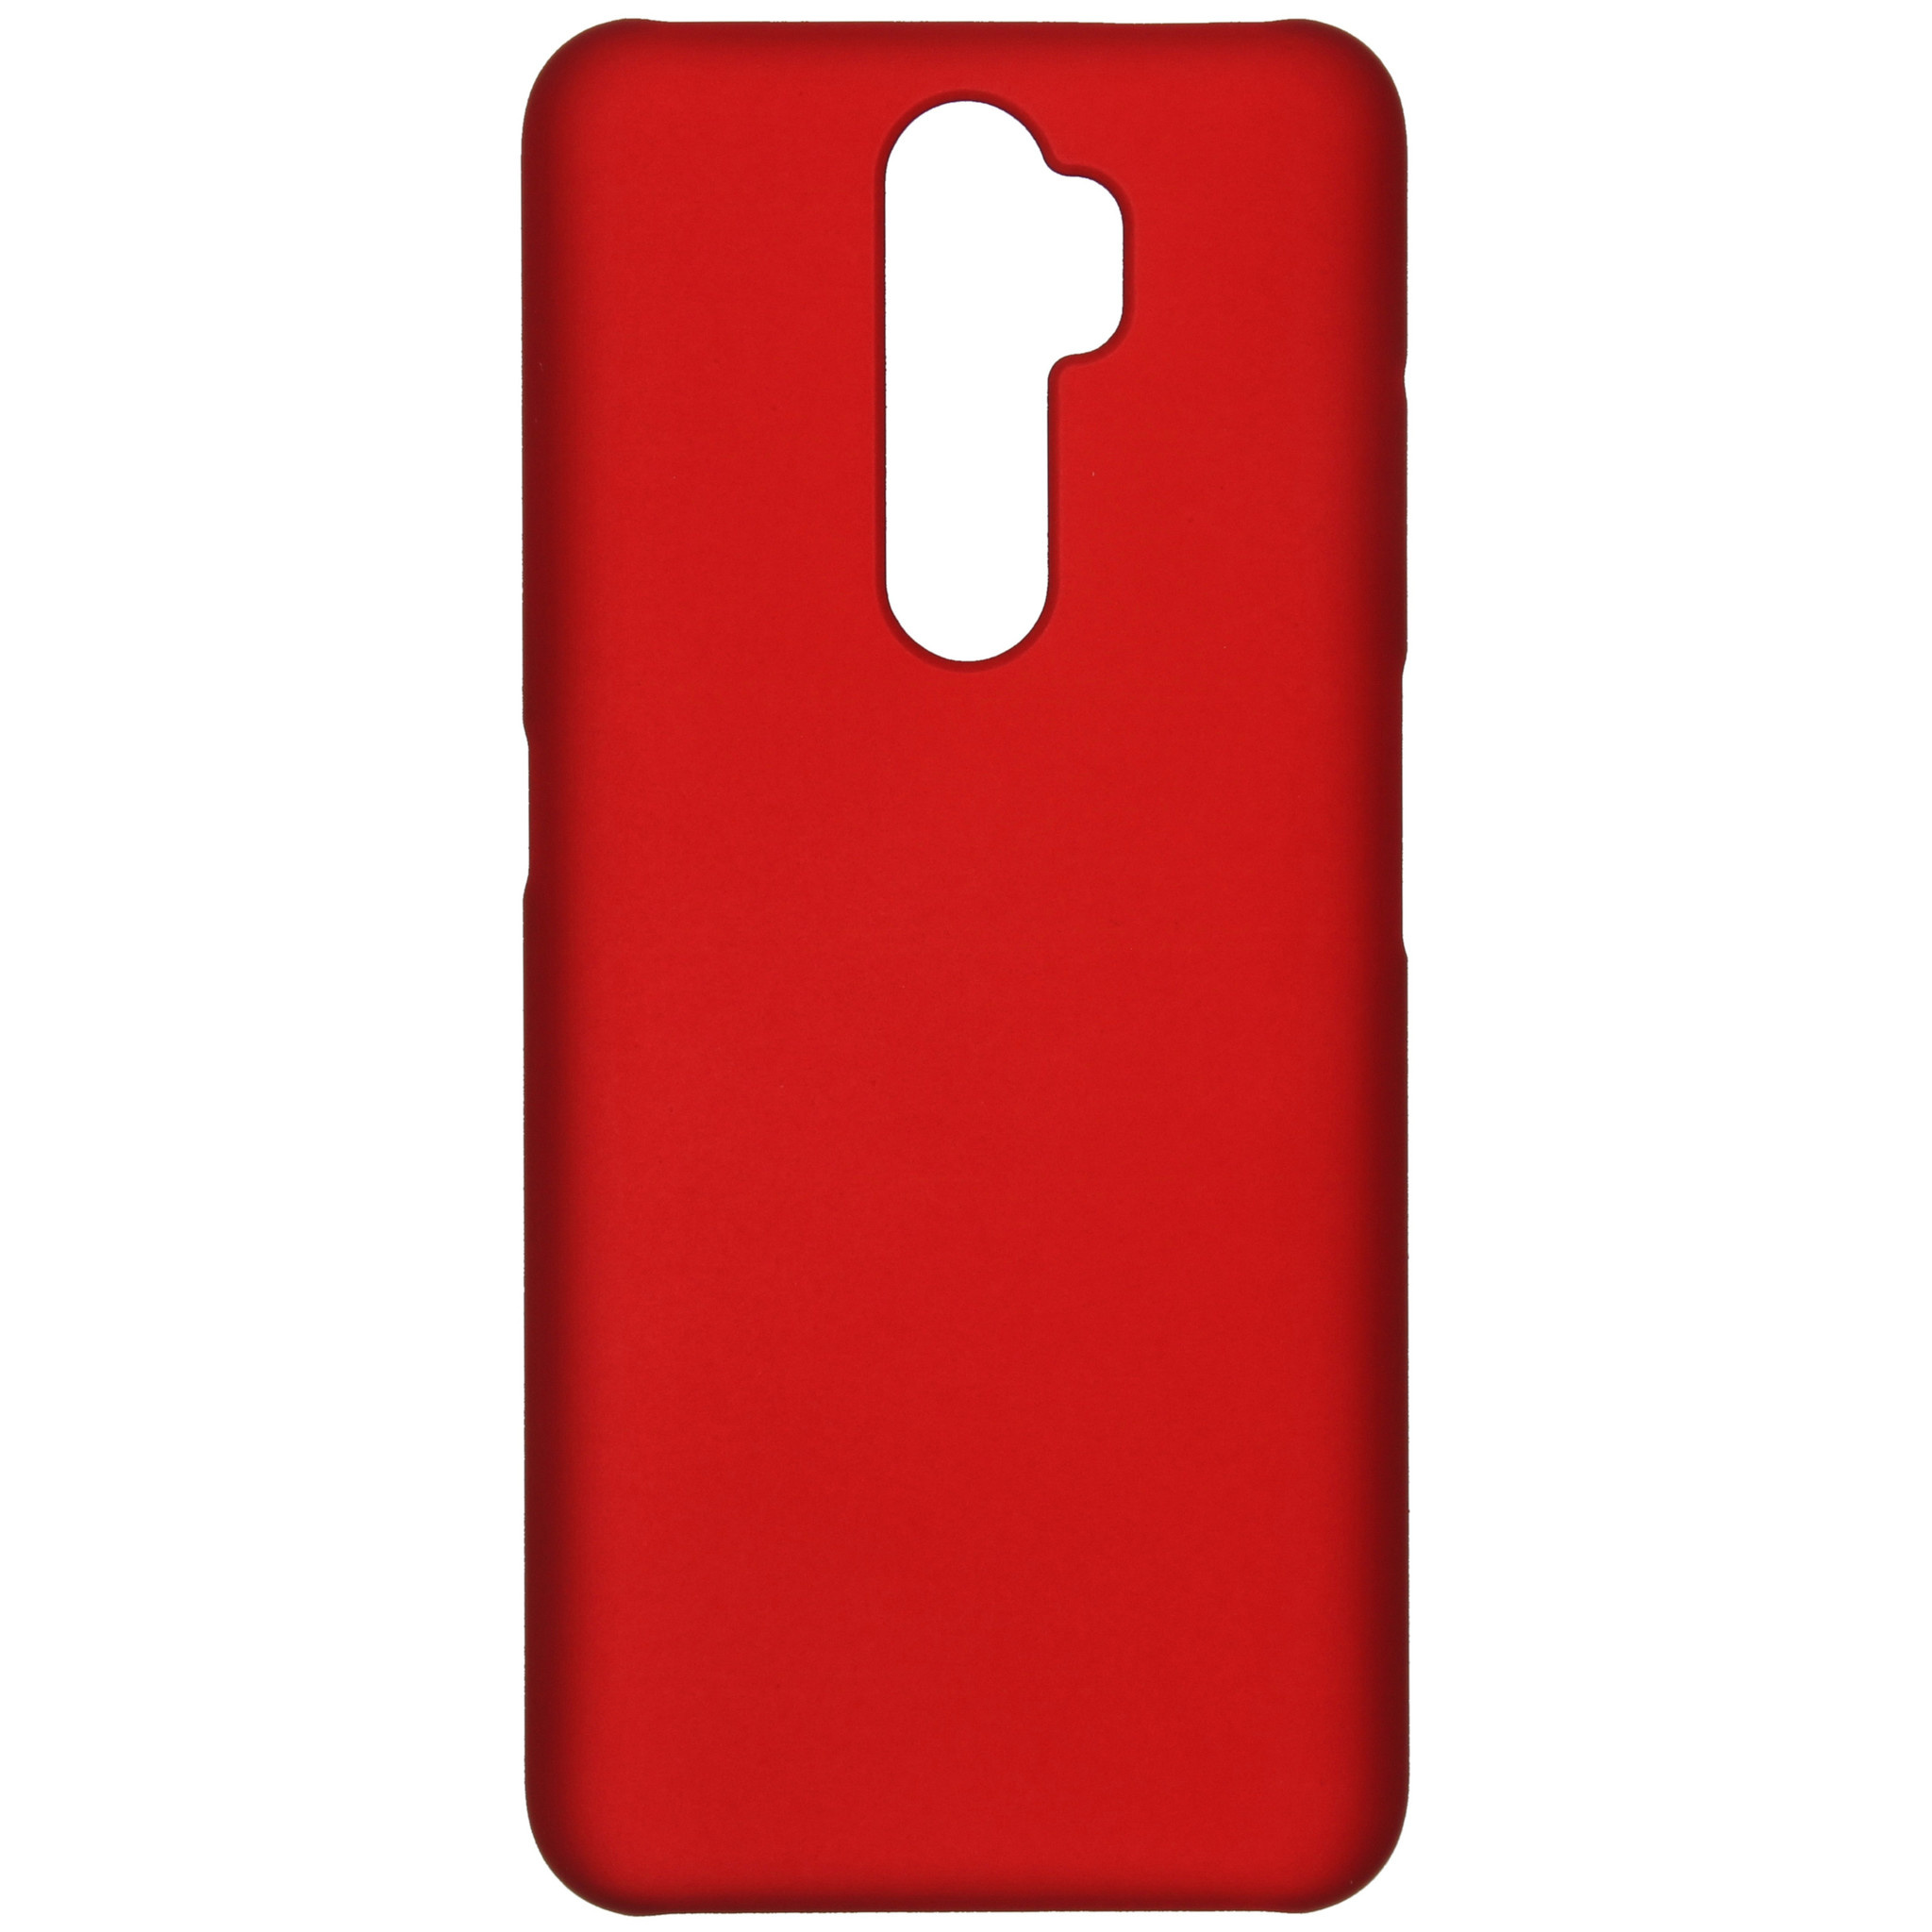 Effen Backcover Oppo A5 (2020) / A9 (2020) - Rood